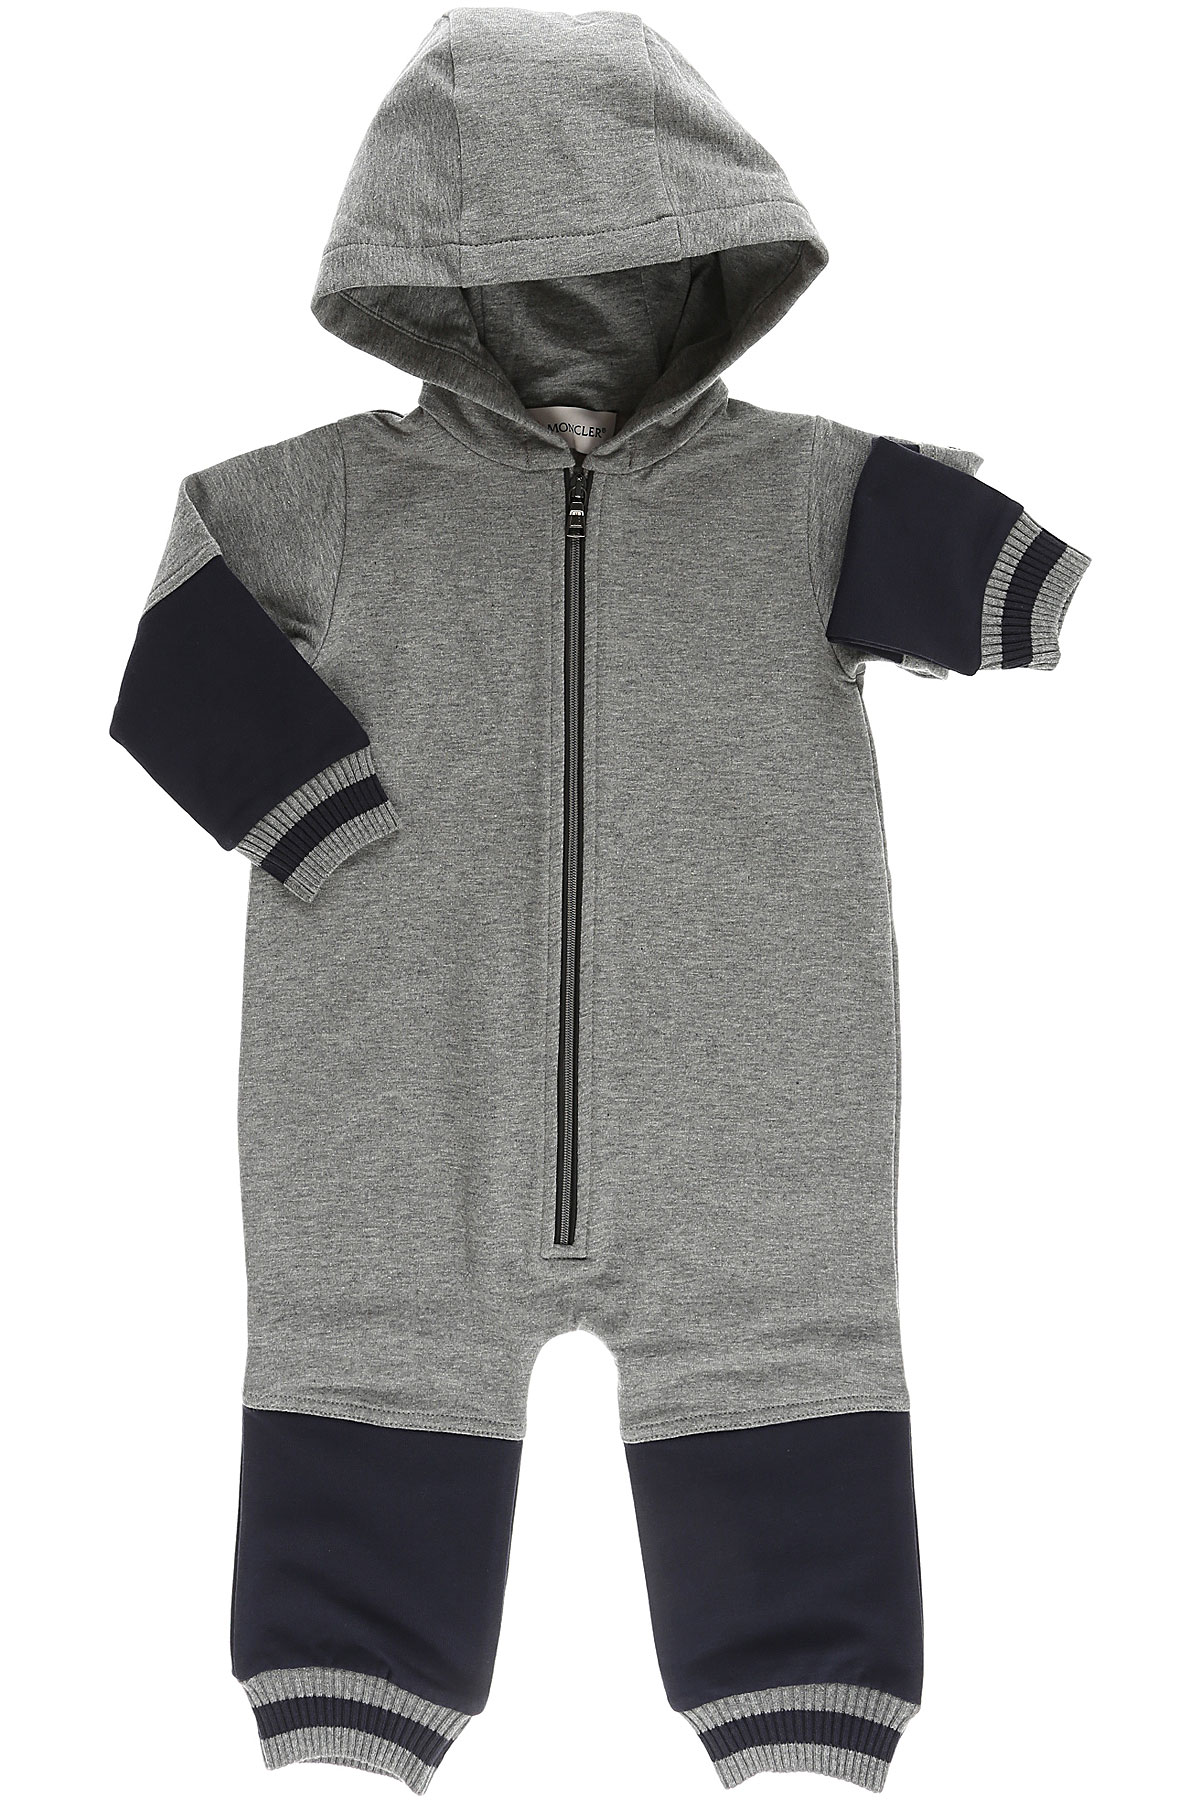 Image of Moncler Baby Bodysuits & Onesies for Boys, Grey, Cotton, 2017, 12M 3M 9M